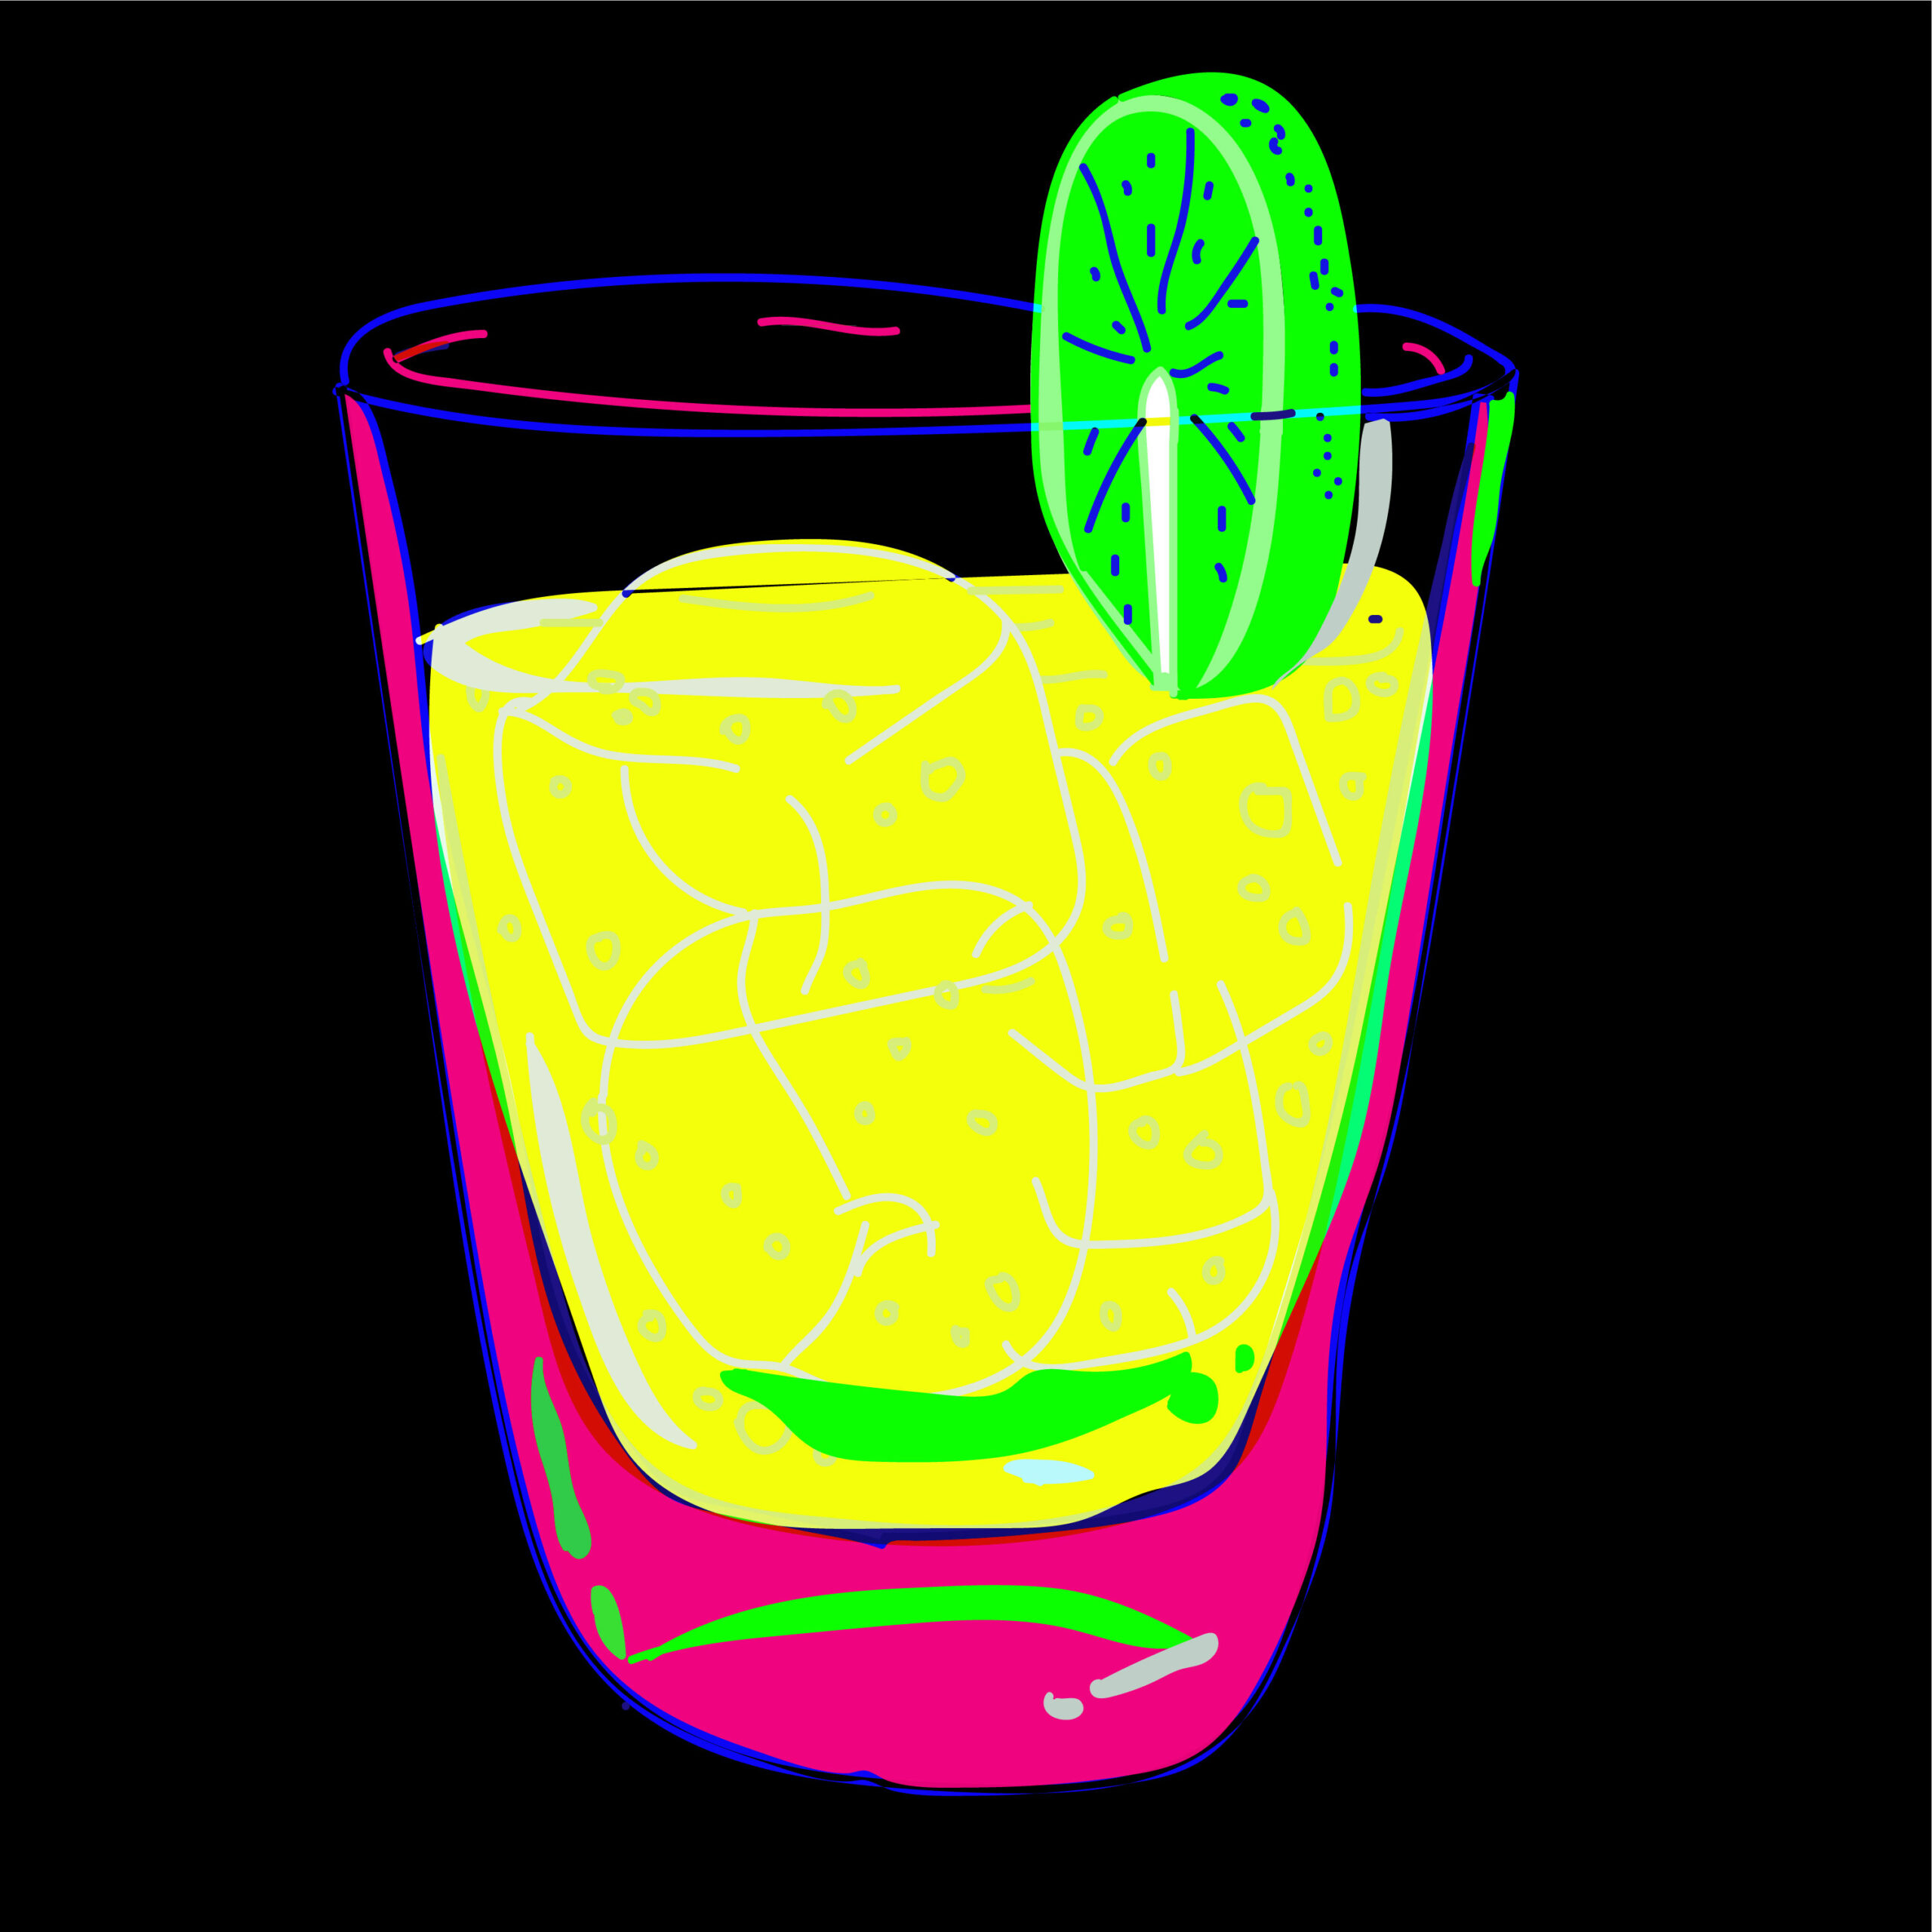 cocktail illustration by Mina Tocalini for 360 Magazine